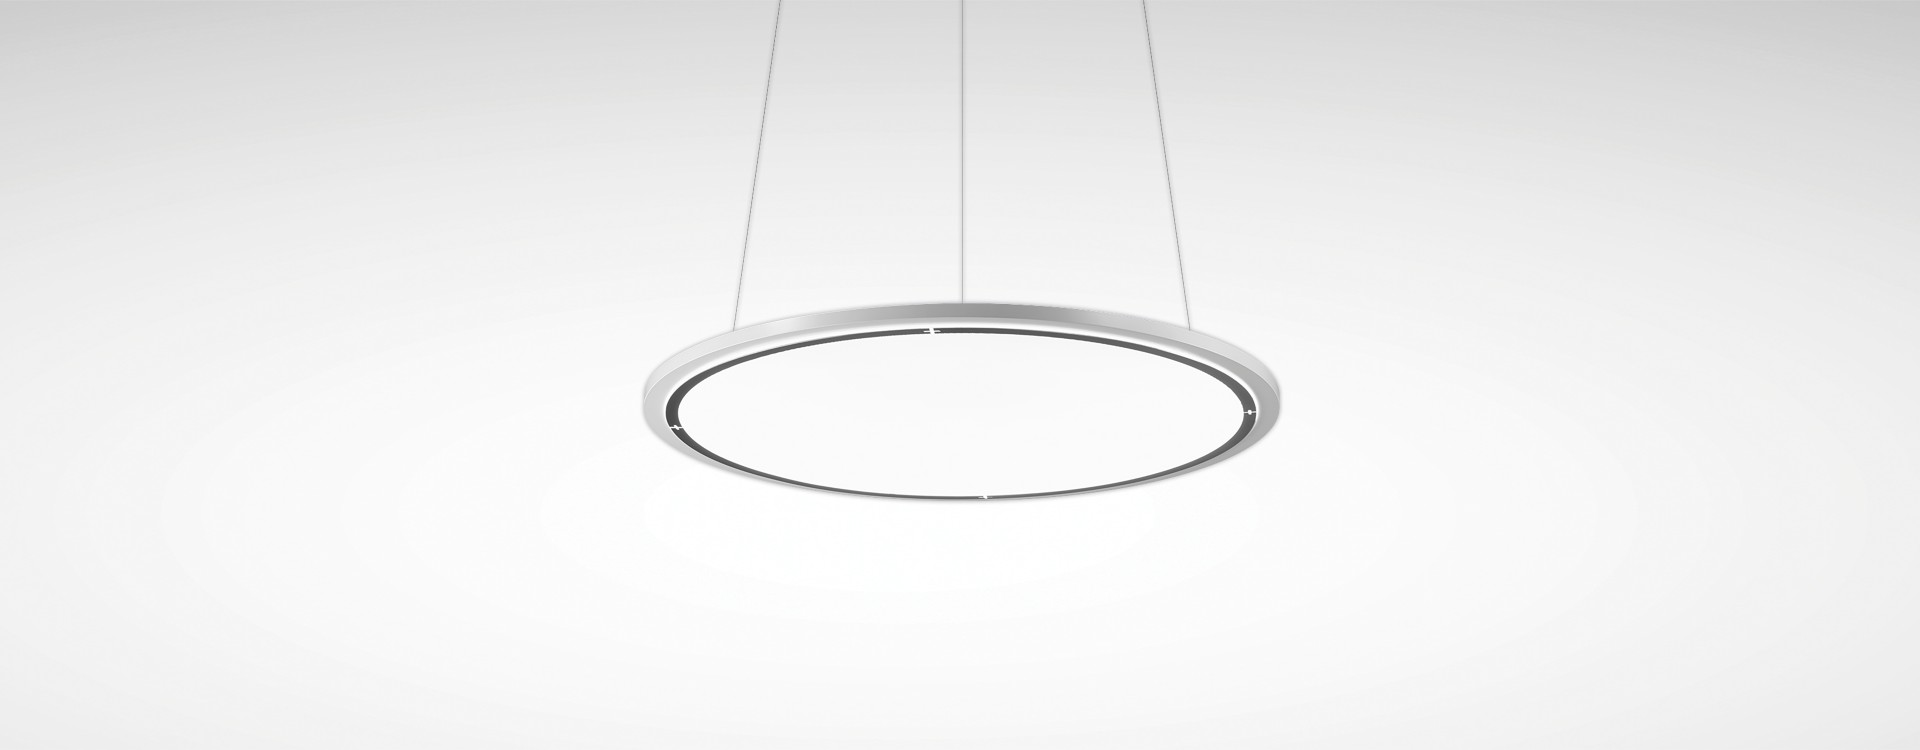 Lateralo Suspendu Luminaire Led Luminaires Ring Suspendus › ZTiwOPkXlu